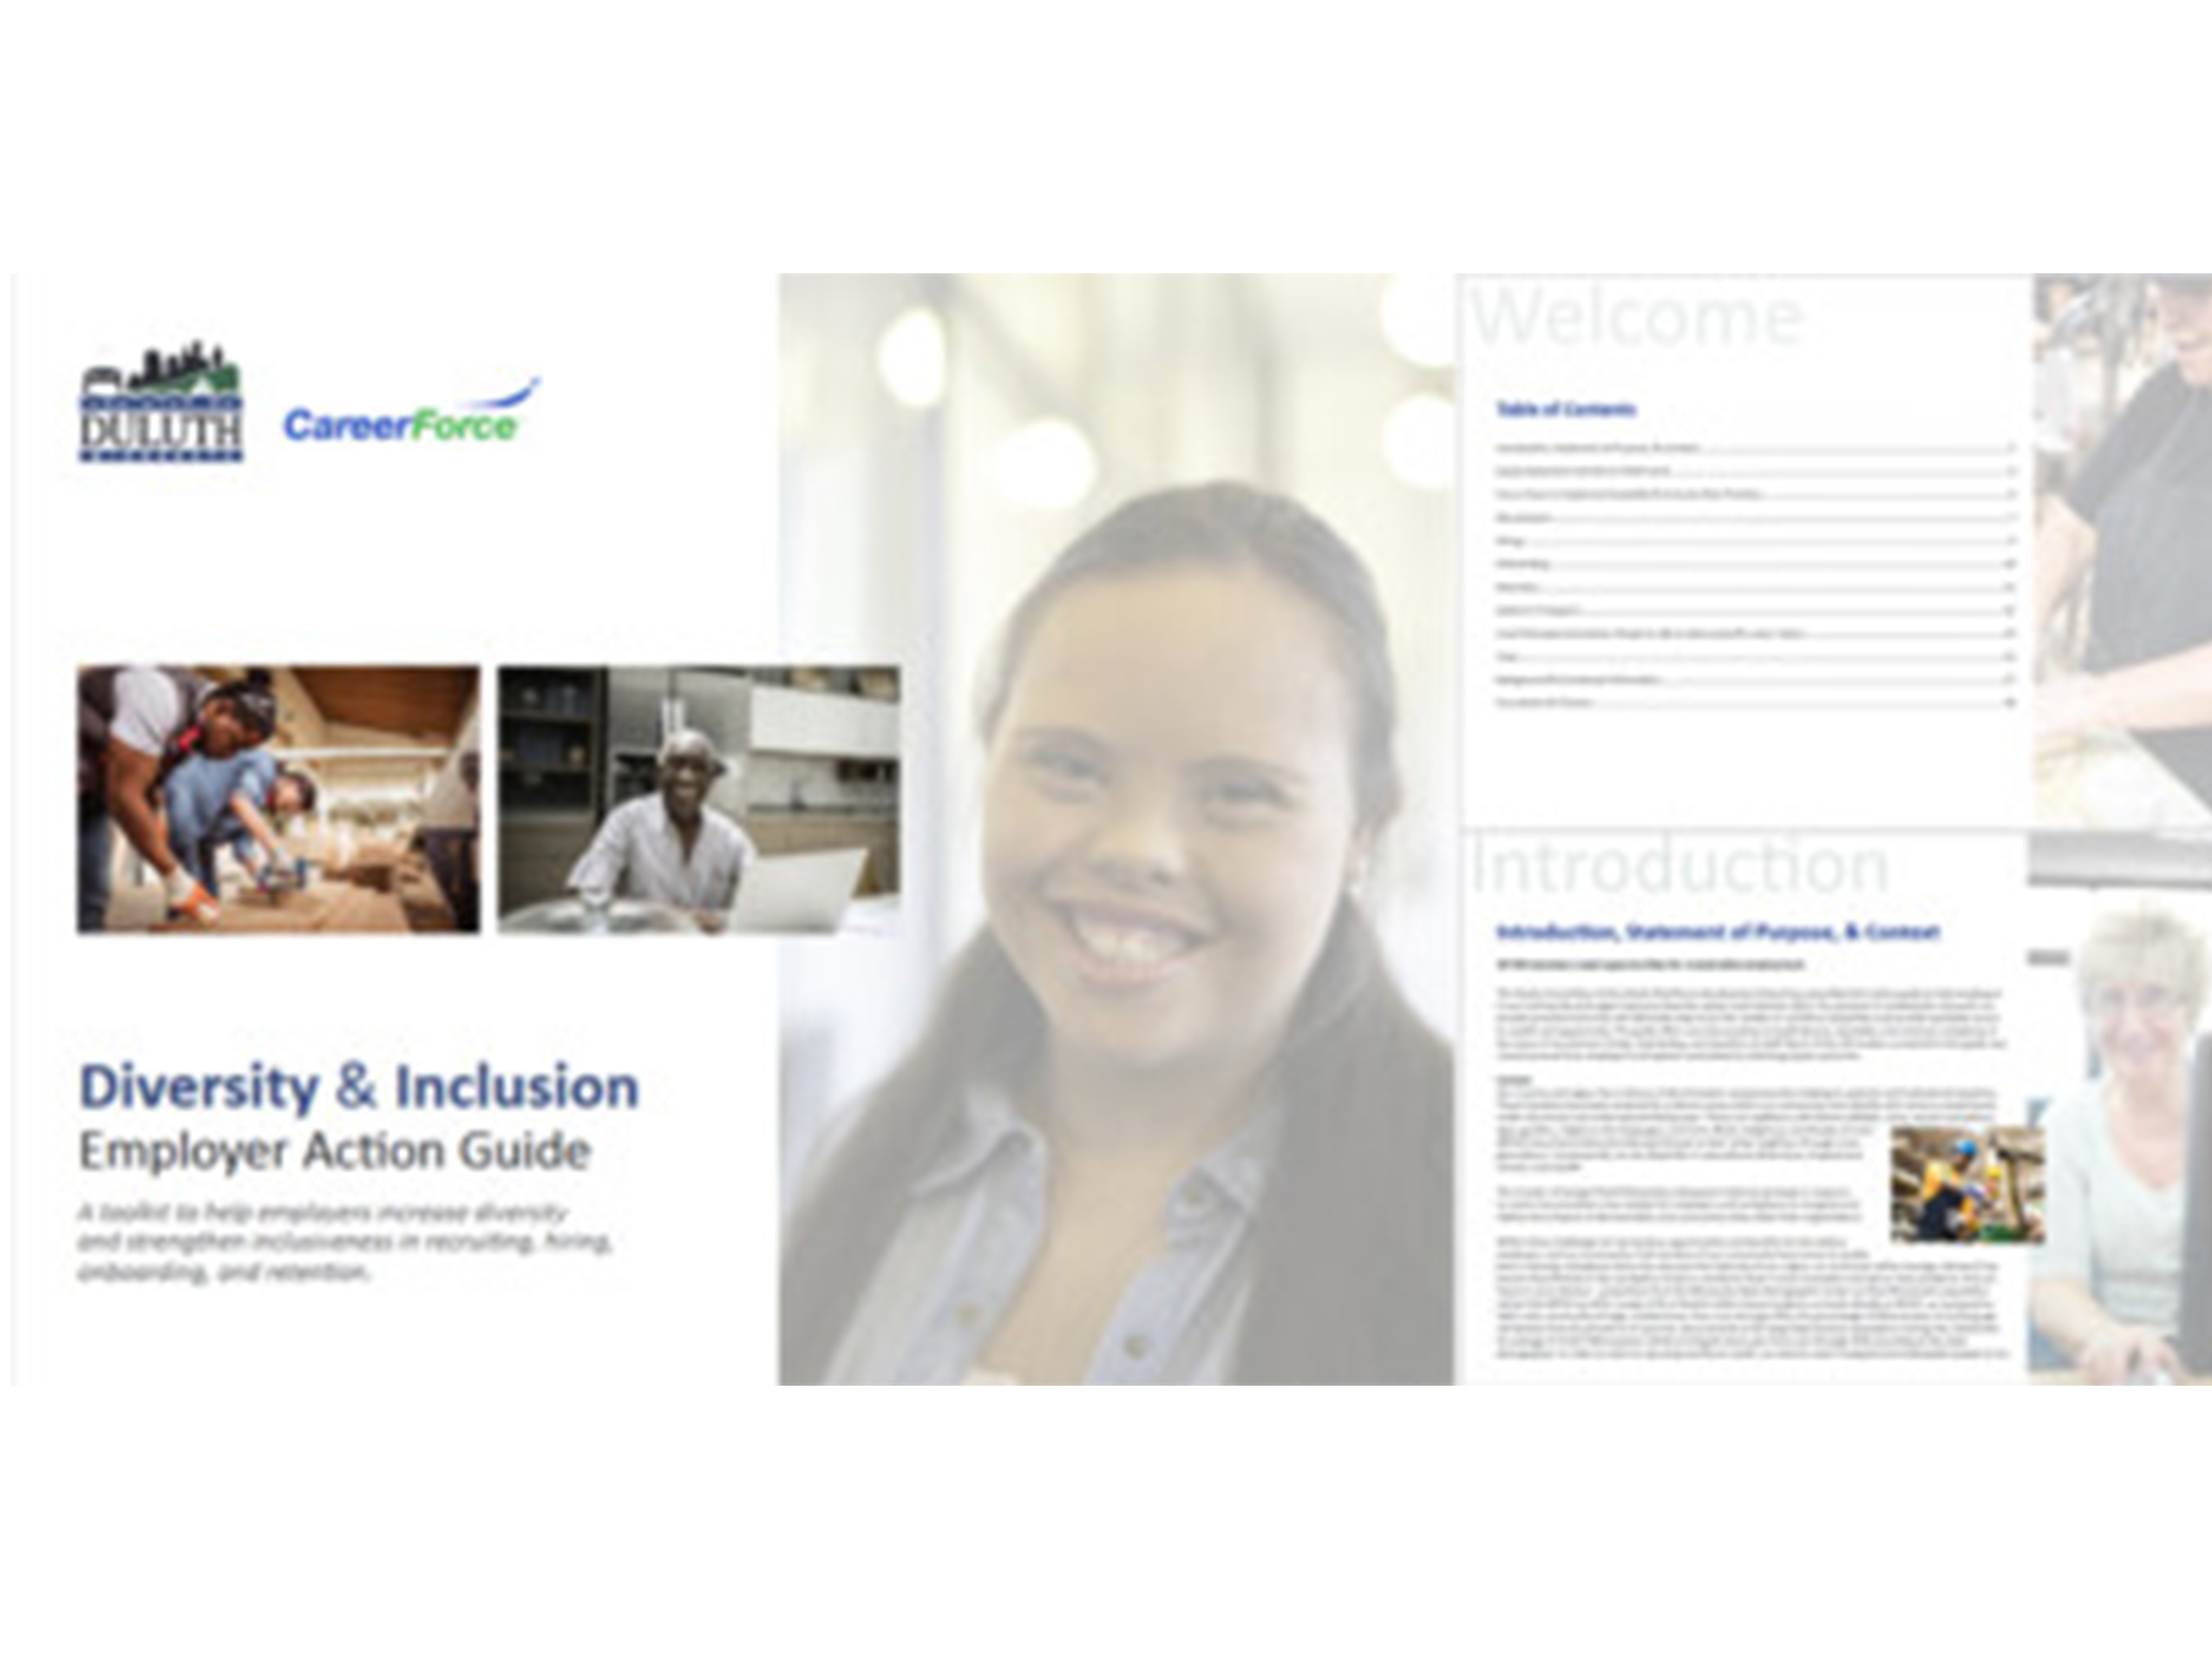 Diversity & Inclusion Employer Action Guide Image